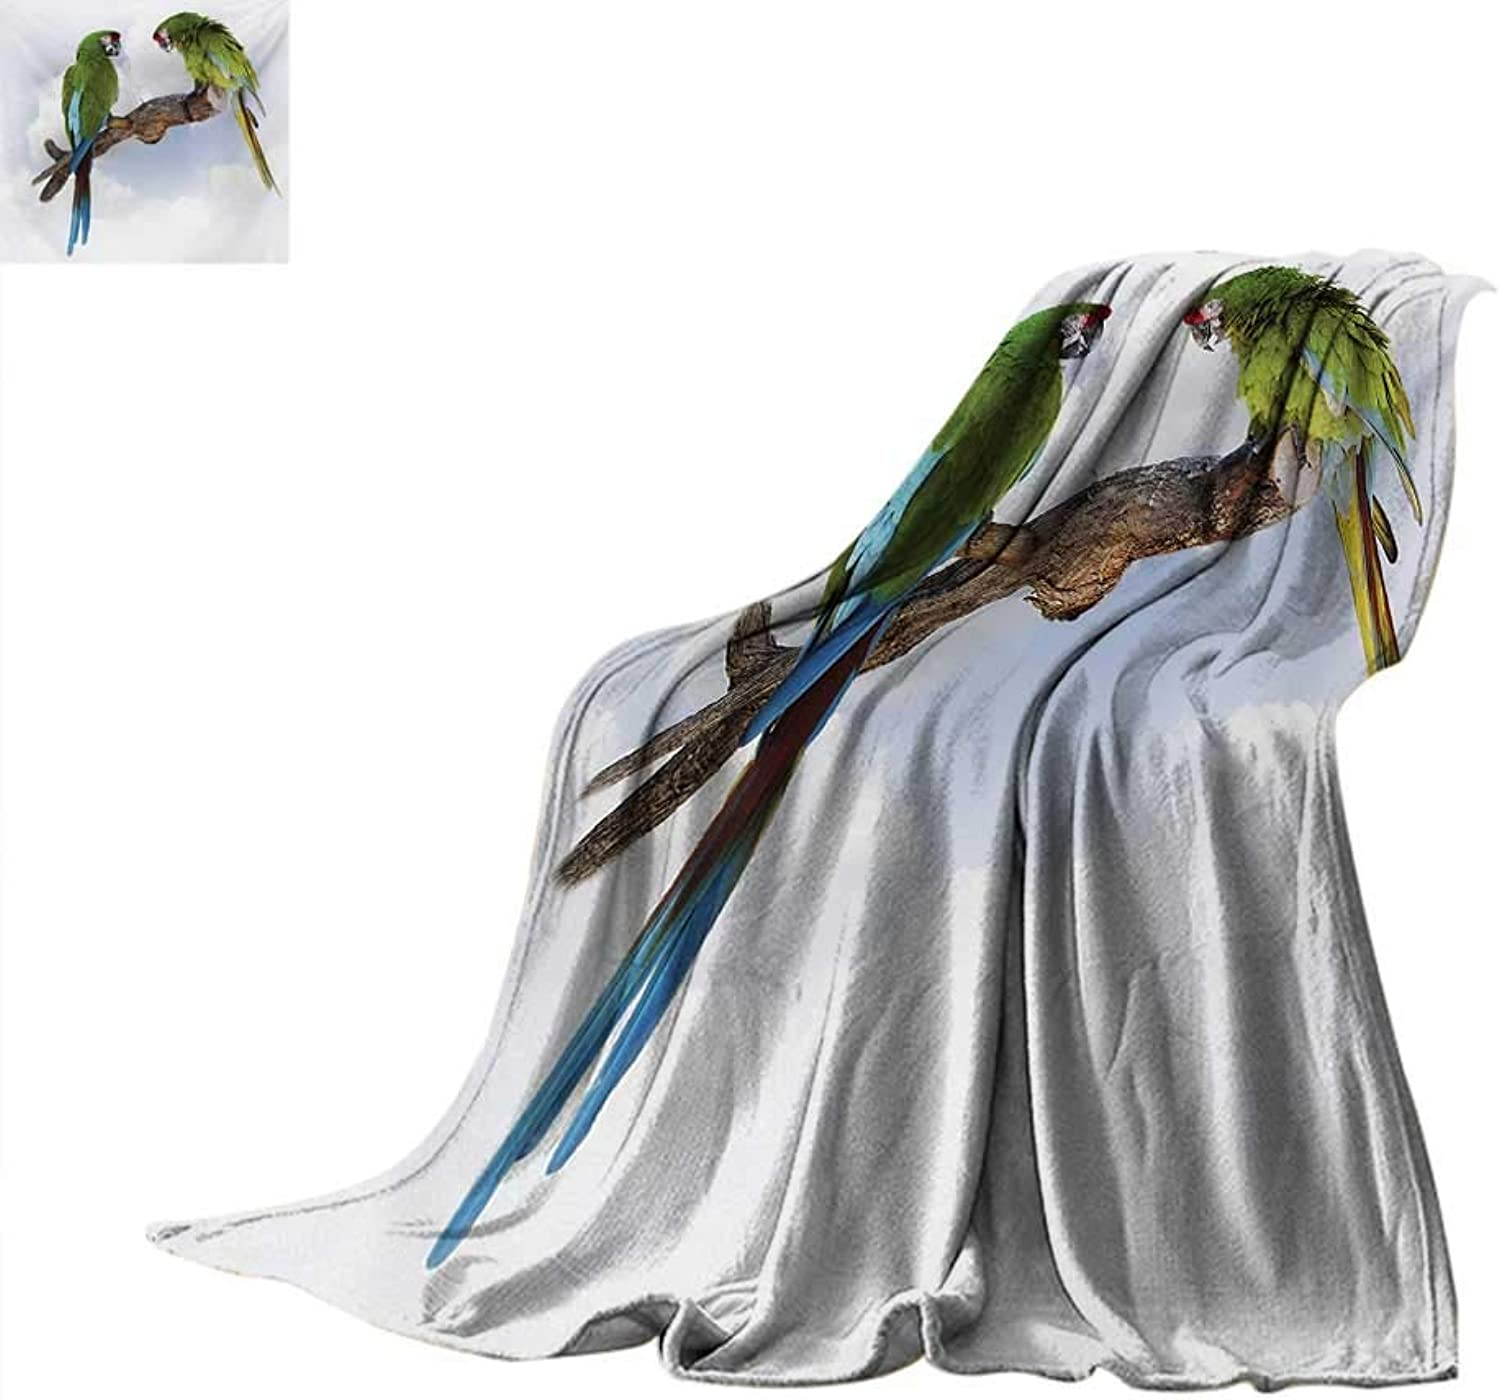 Parredblanket Throw blanketTwo Parred Macaw on a Branch Talking Birds Clever Creatures of The Natureoutdoor Blanket 60 x50  Green White Brown